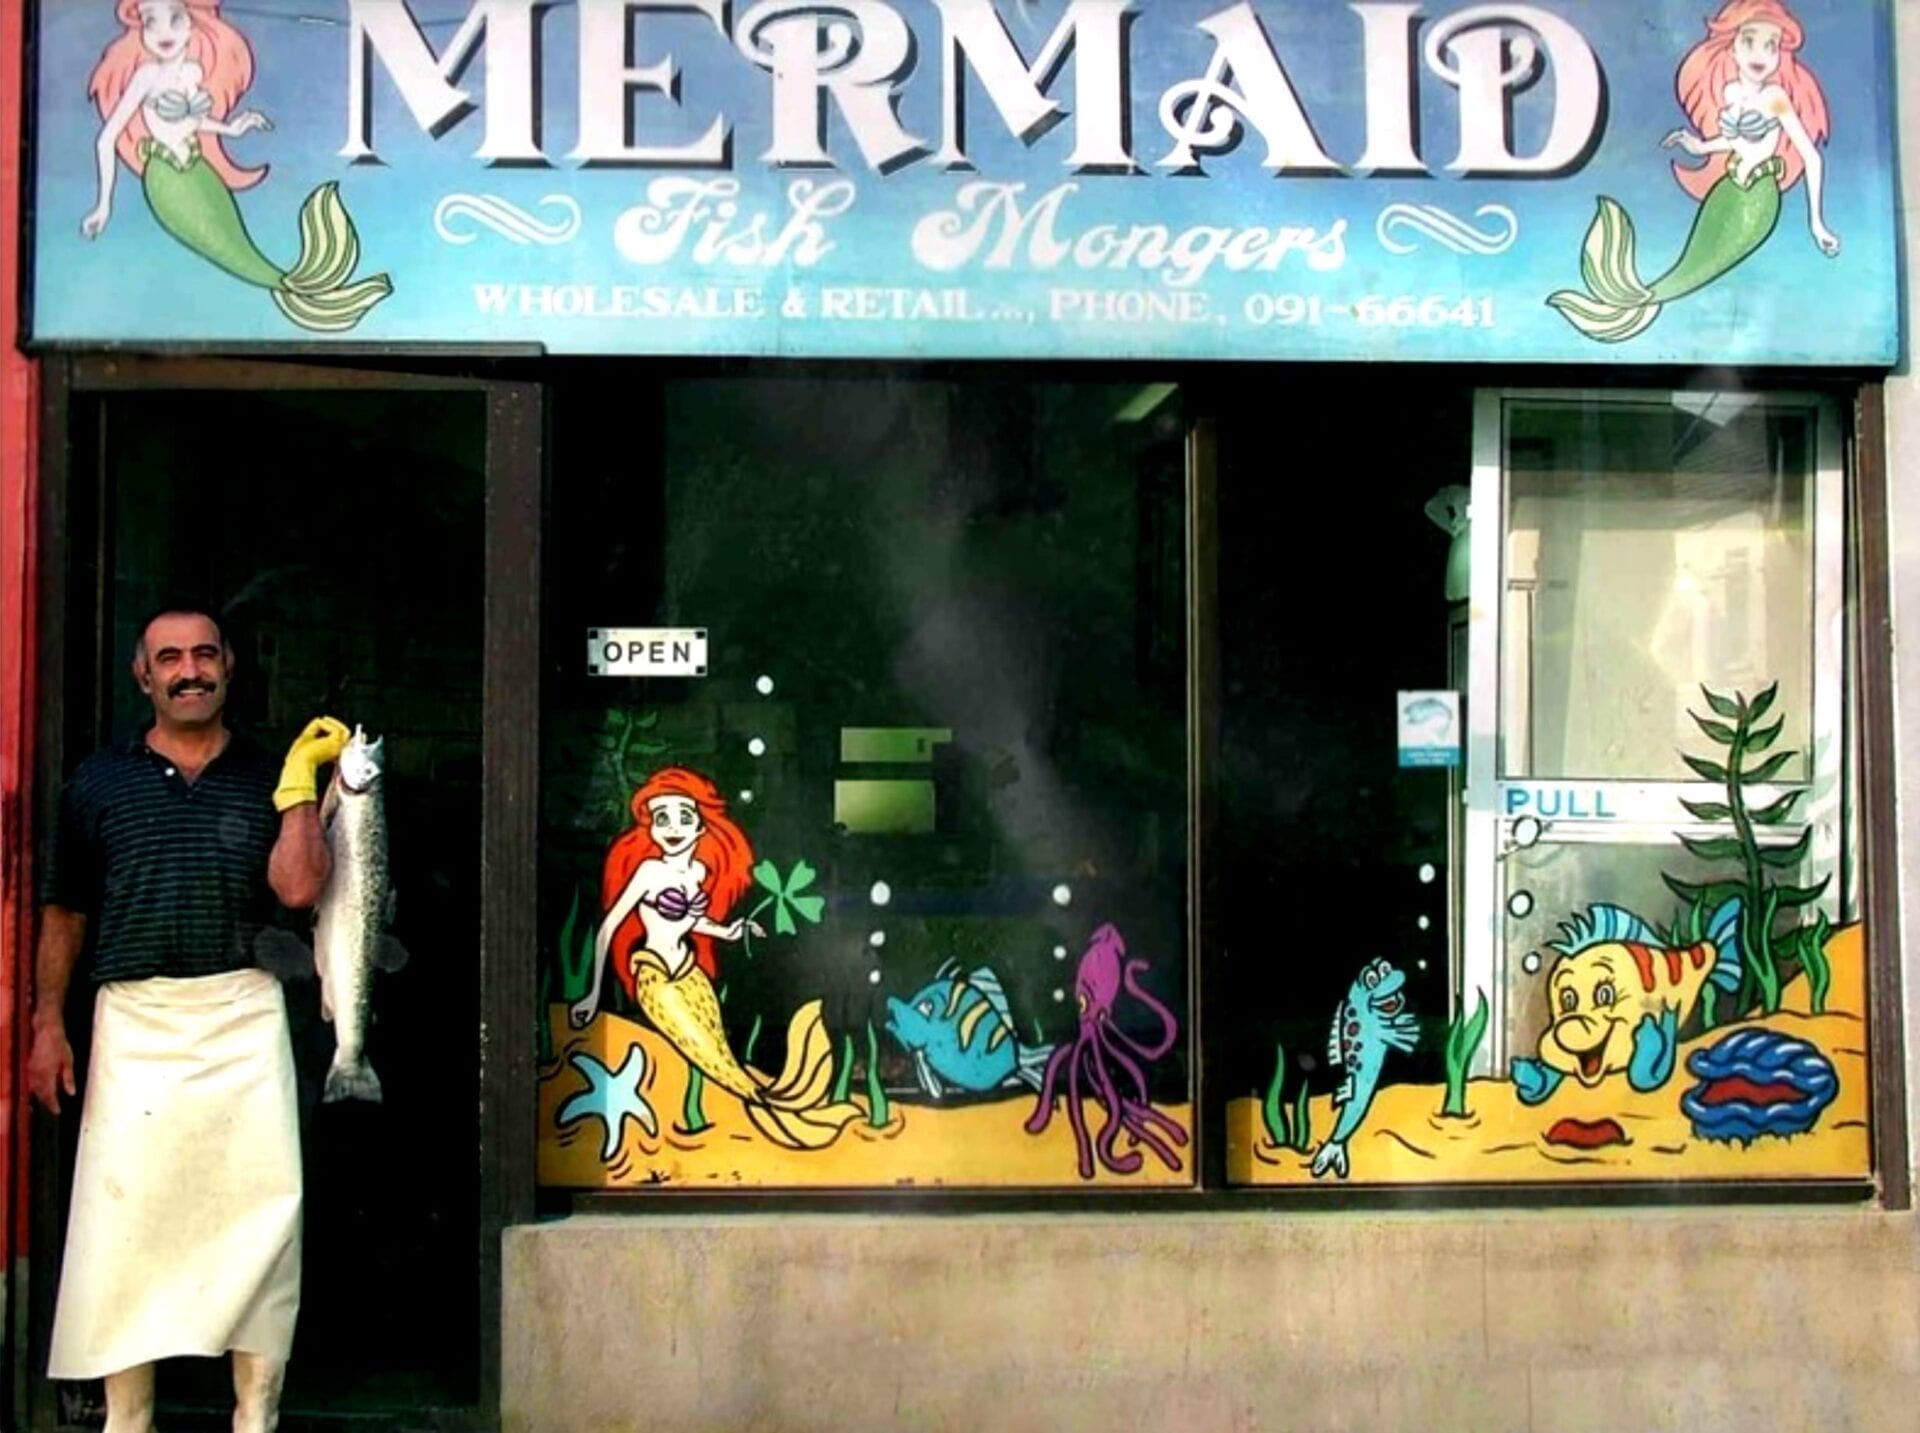 Mermaid Fish Mongers - the humble beginning of Hooked Galway!